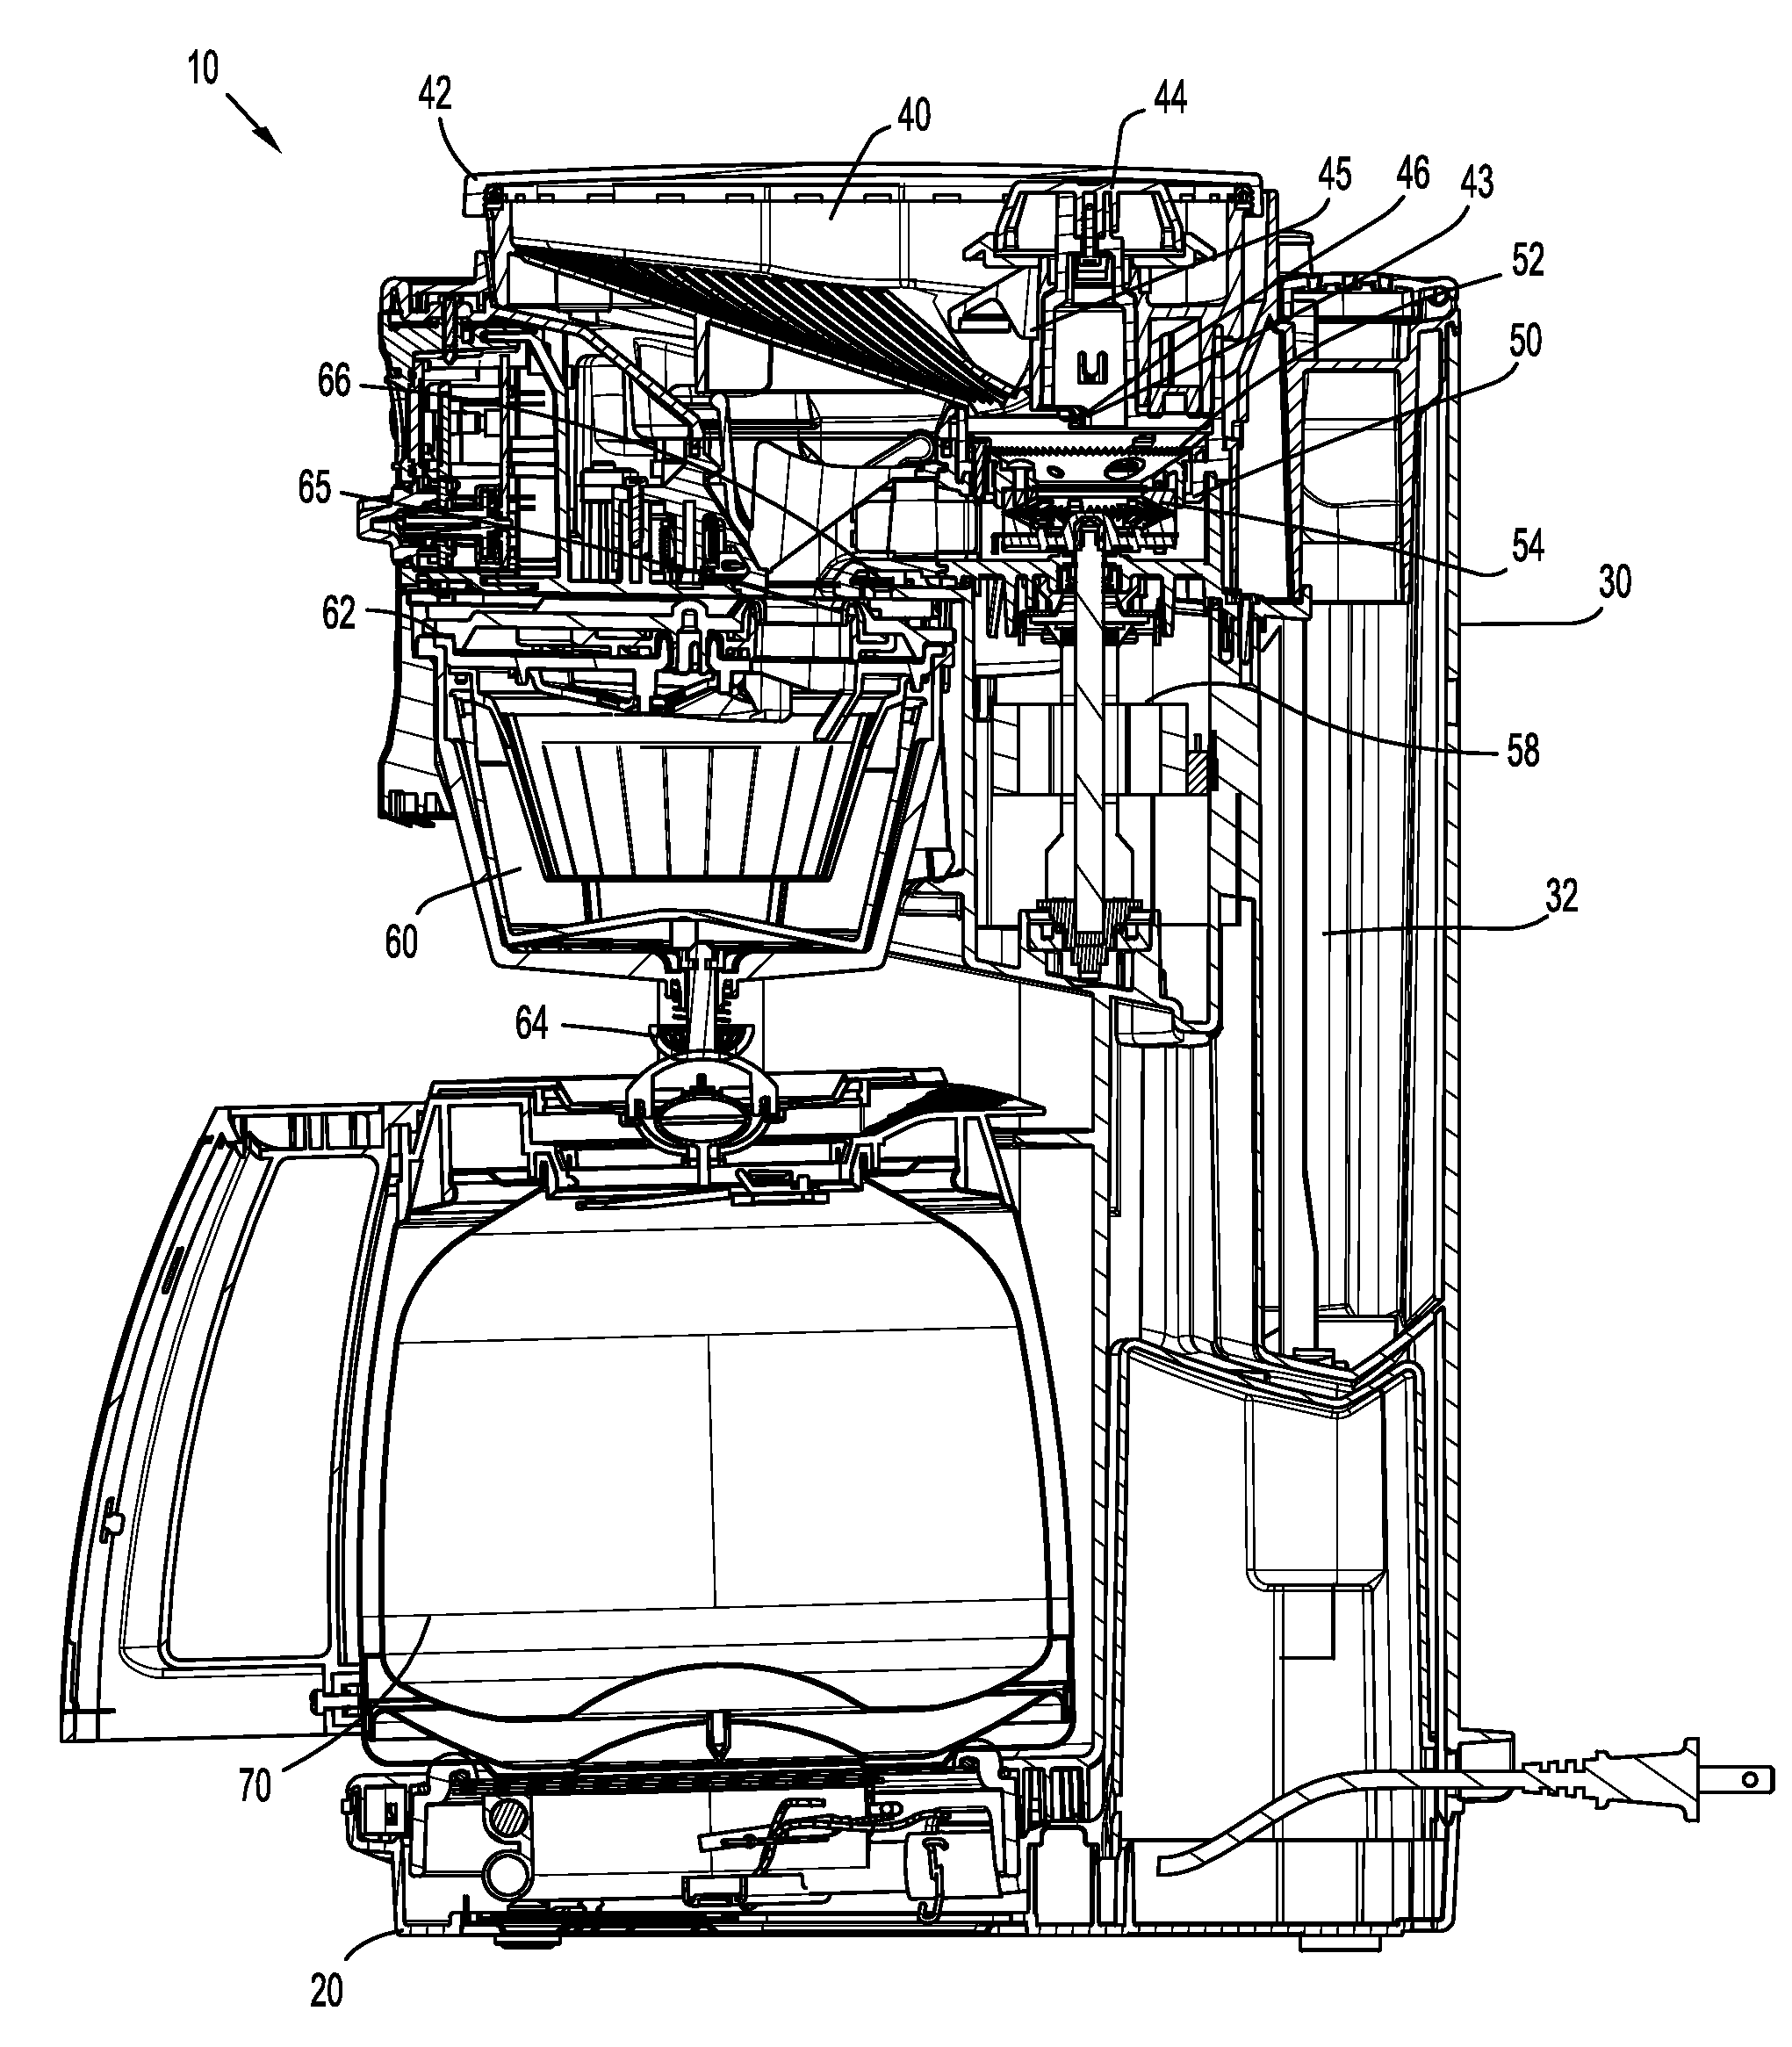 Coffee Maker Exploded : Patent US20090031900 - Coffee maker - Google Patents